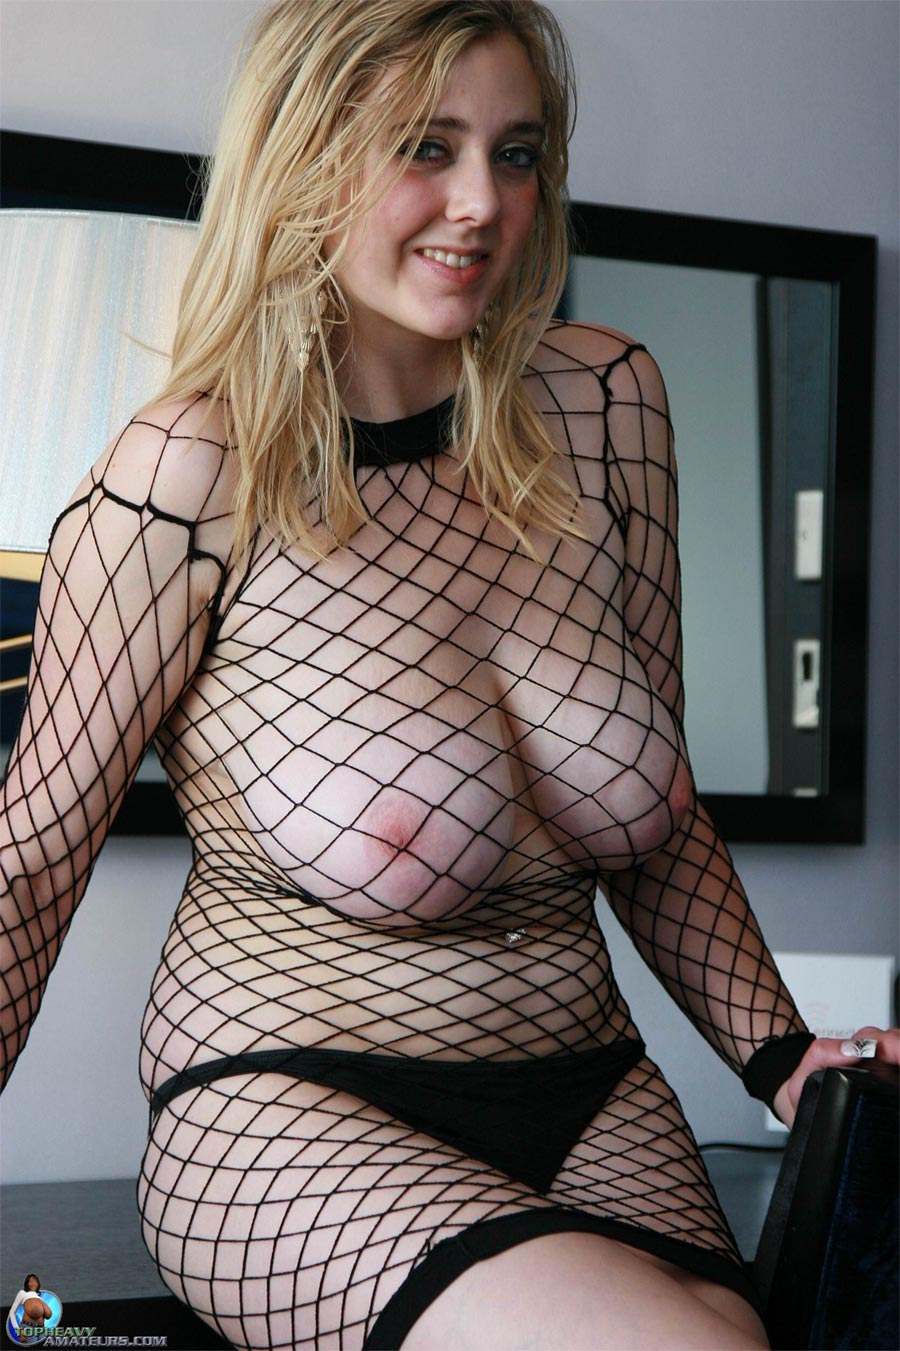 Image URL: http://www.primecurves.com/sapphire-top-heavy-fishnet/1.jpg  Click to view this fusker